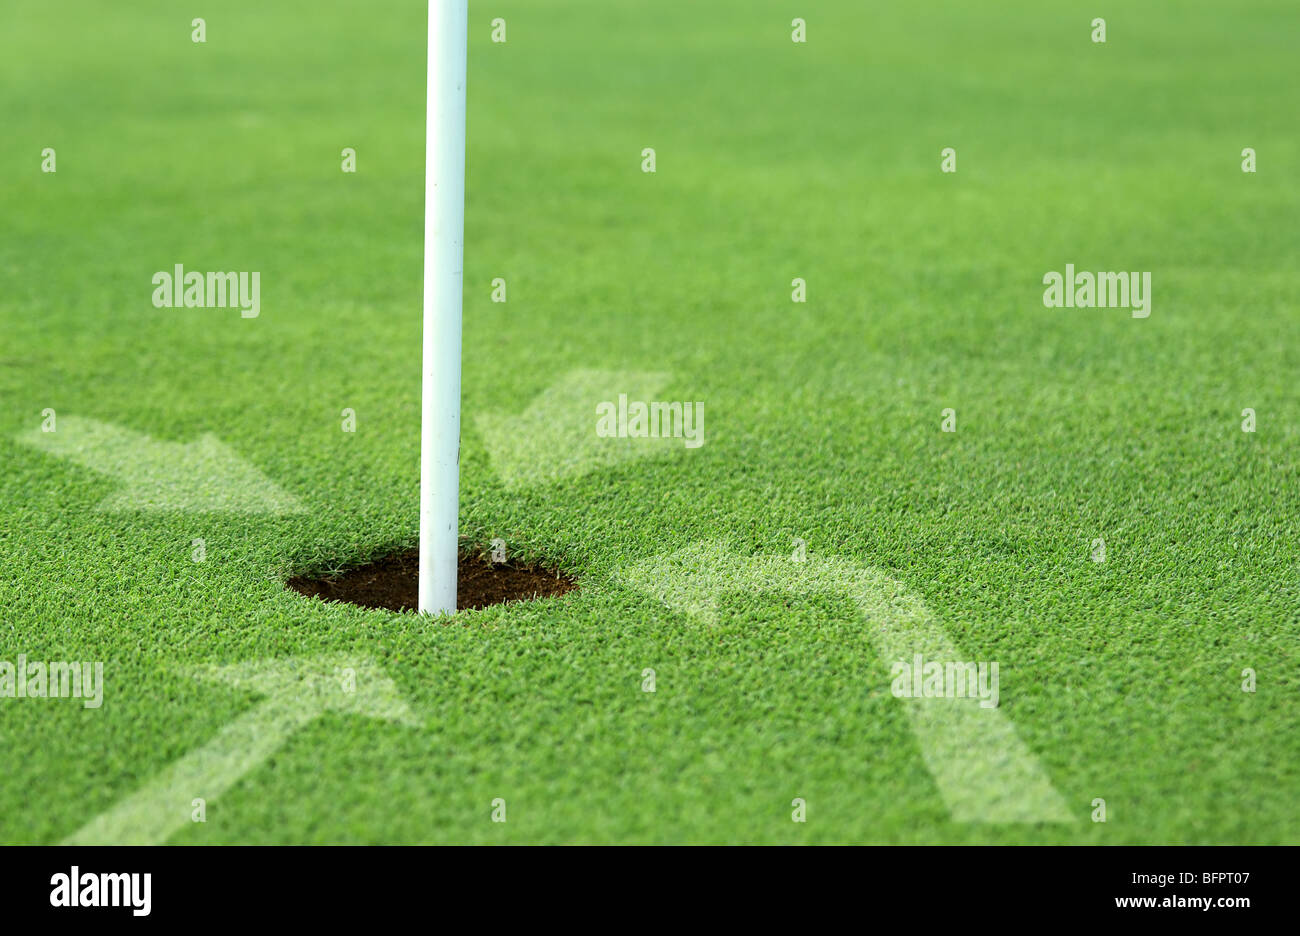 need help or guidance arrows pointing into golf hole - Stock Image